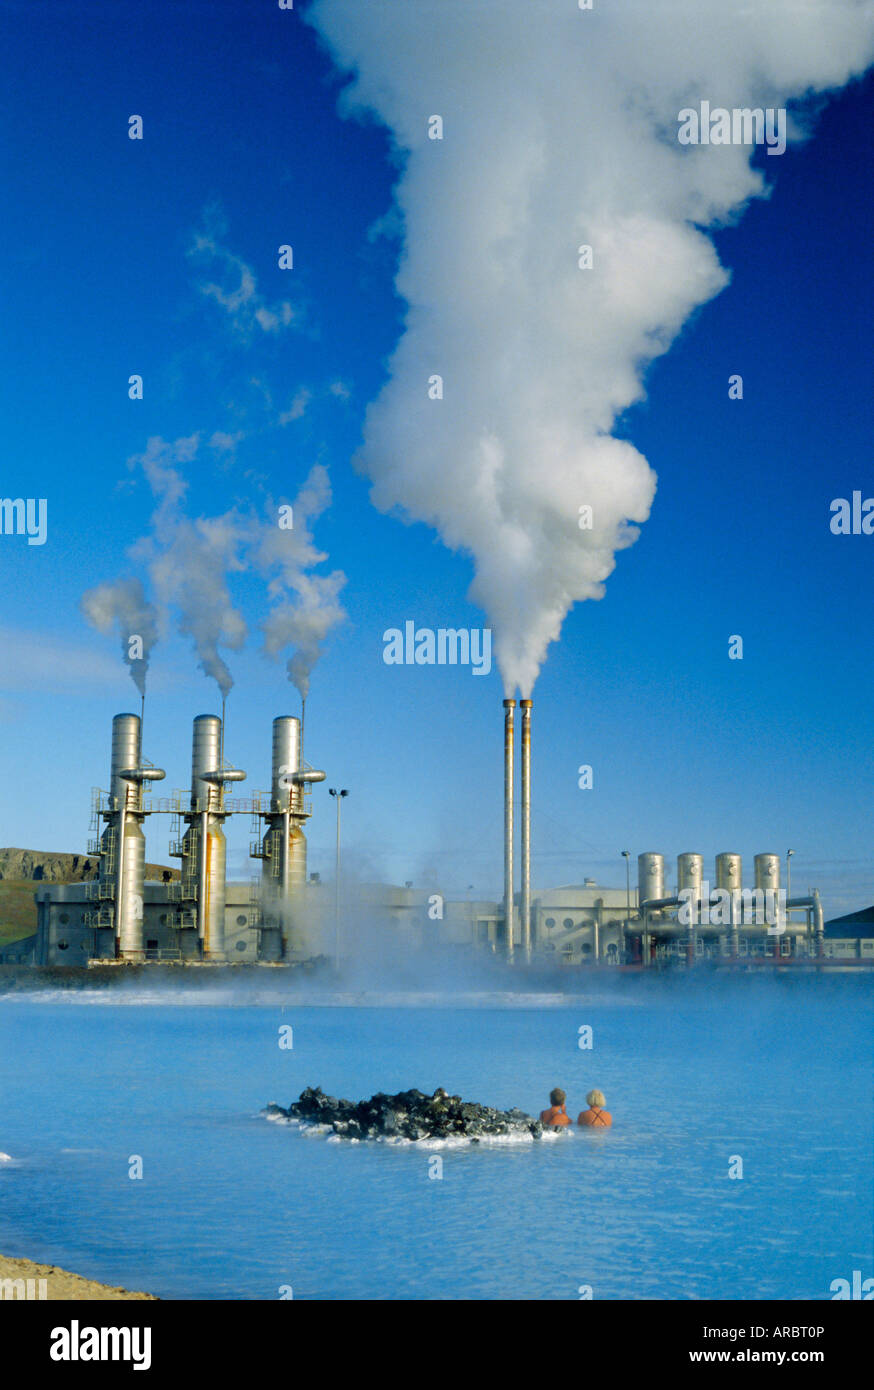 bd7e4286 Geo thermal power plant in Svartsengi (Black Field) area, Iceland ...